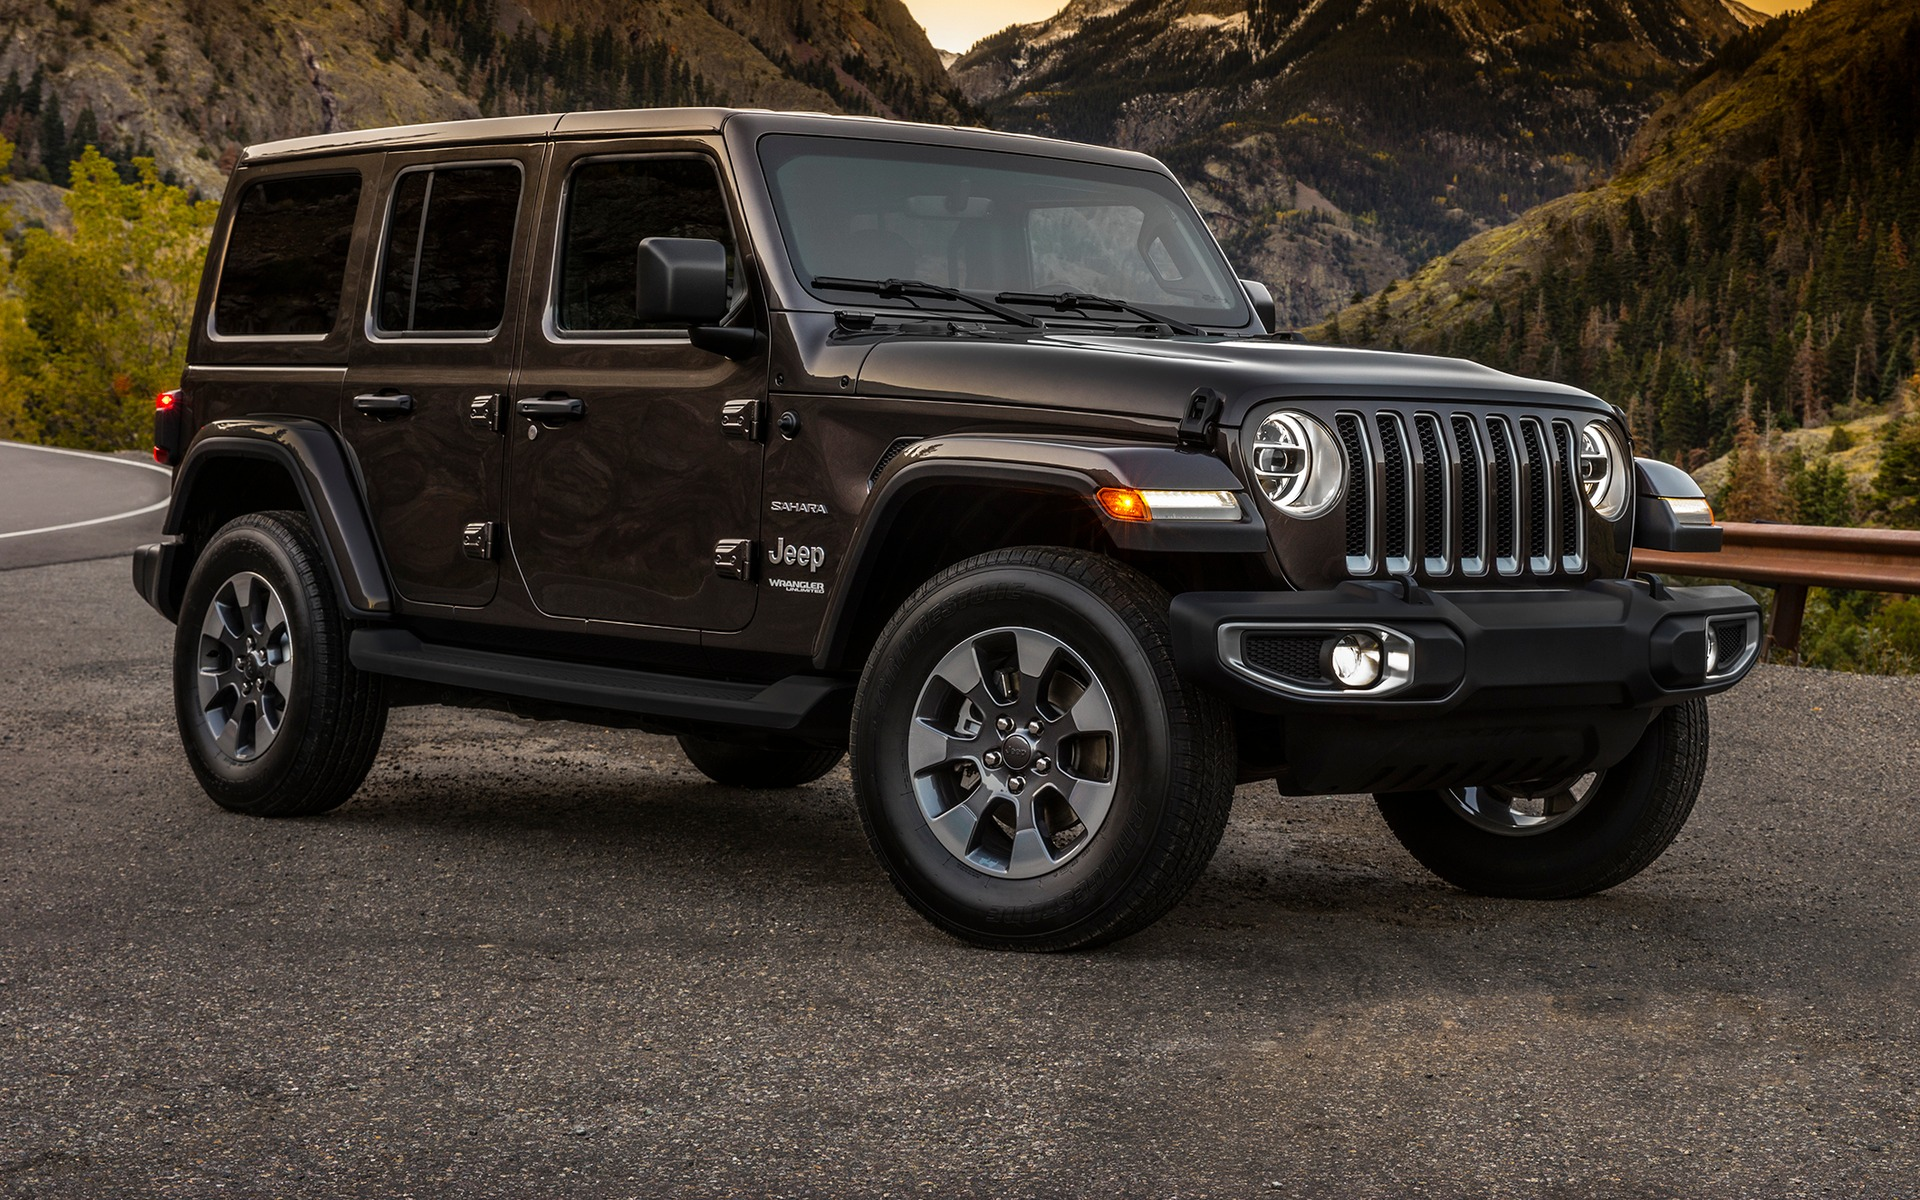 enfin jeep annonce officiellement le wrangler 2018 guide auto. Black Bedroom Furniture Sets. Home Design Ideas